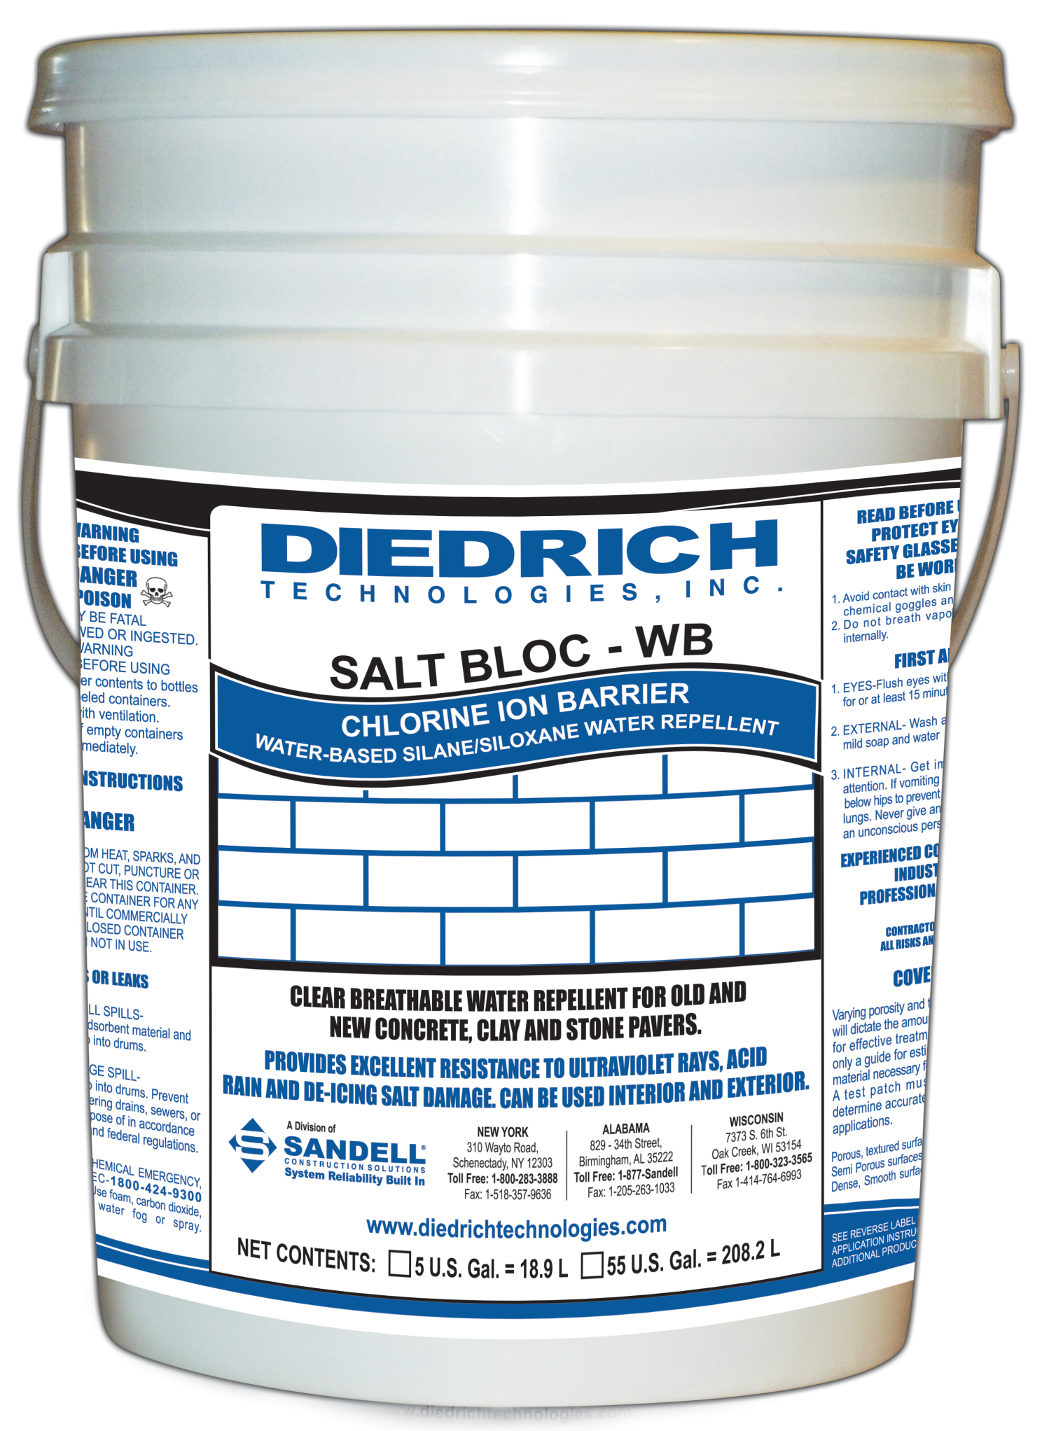 SALT BLOC WB CHLORINE ION BARRIER